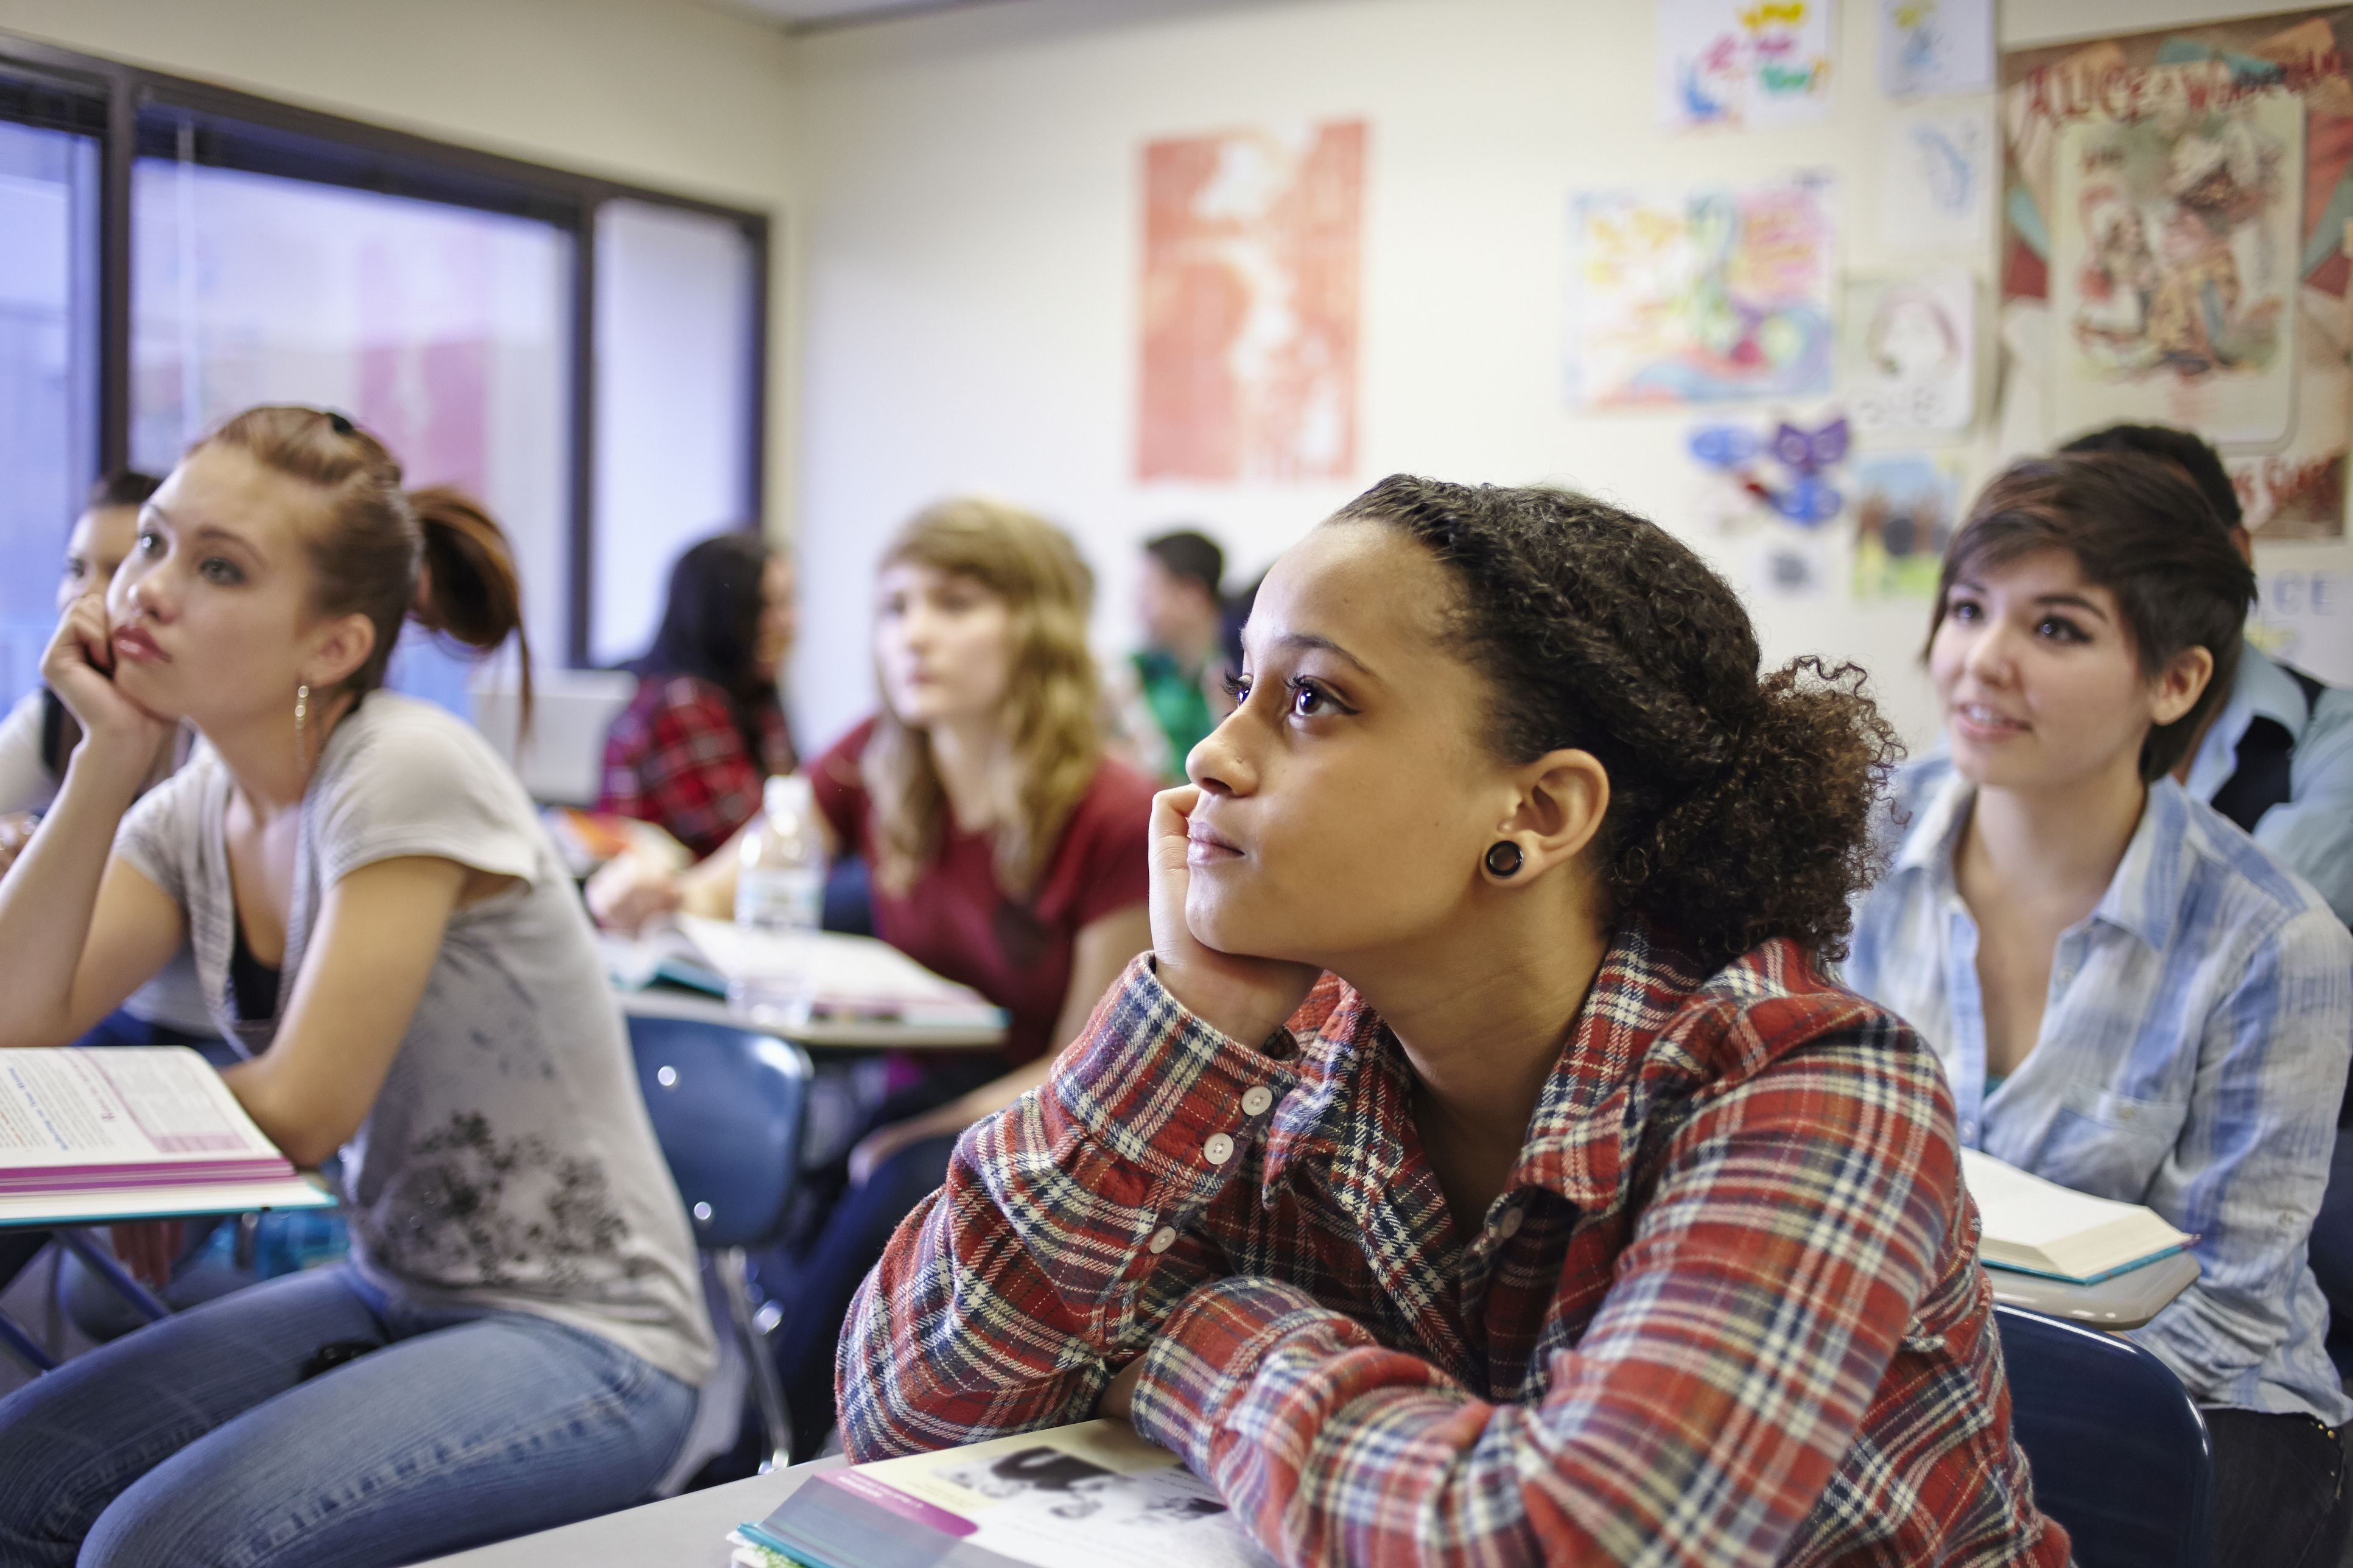 Common Classroom Etiquette And Rules For Students